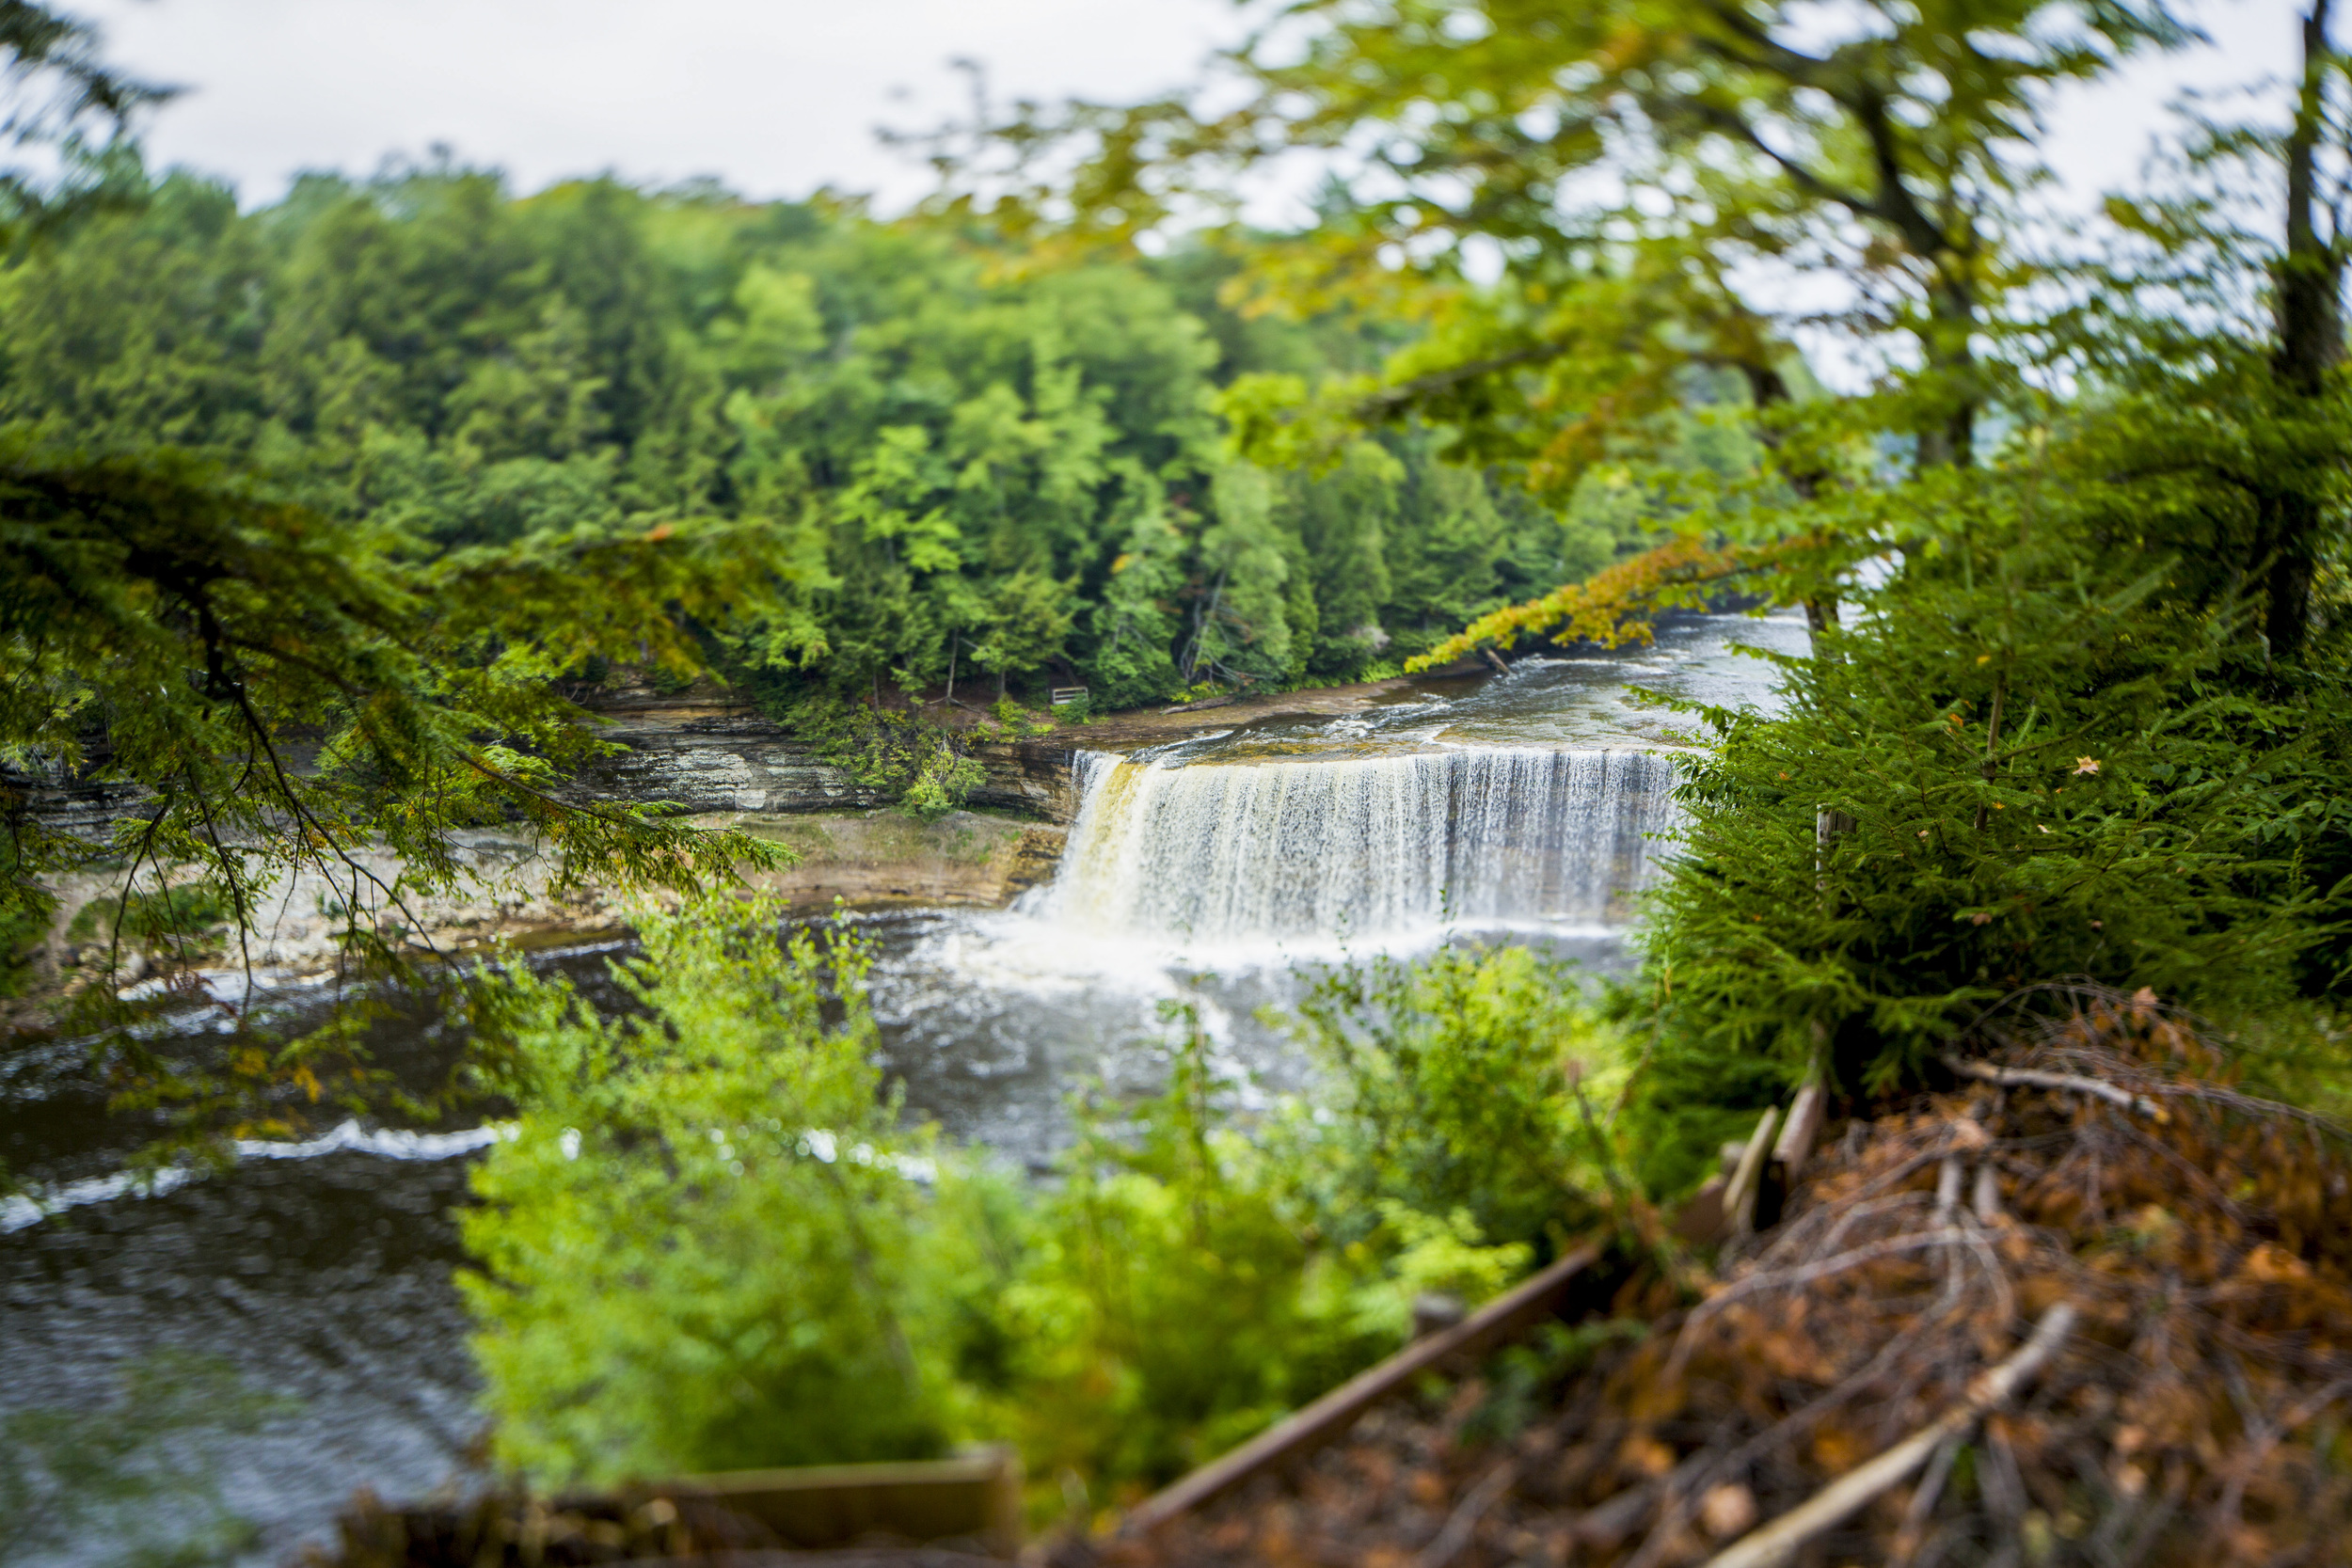 TAHQUAMENON FALLS: Taking advantage of the tilt/shift lens' tilt capability, I was able to make Tahquamenon falls in Paradise look like it was far smaller than it actually is. The blur at the top and bottom of the photo is what causes that effect.